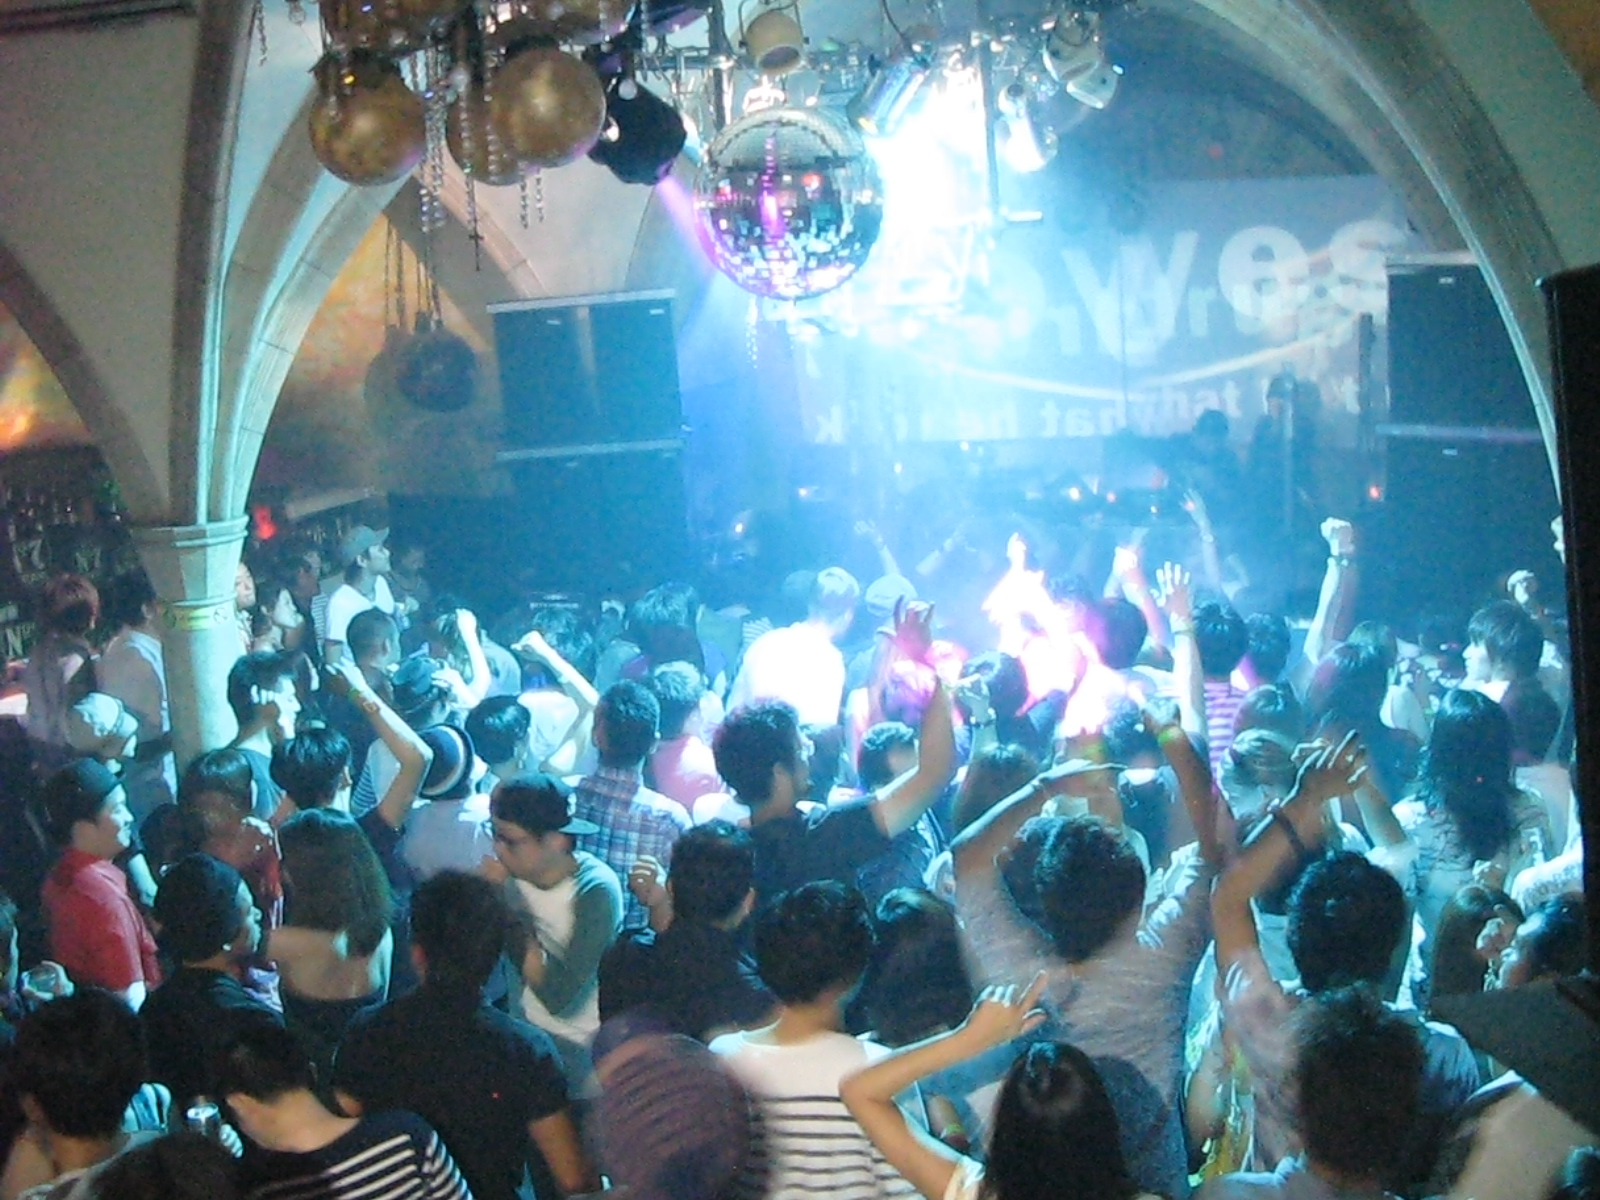 Club Party Crowd Stock Photos - Download 19,235 Royalty ...  |People Having Fun In A Club